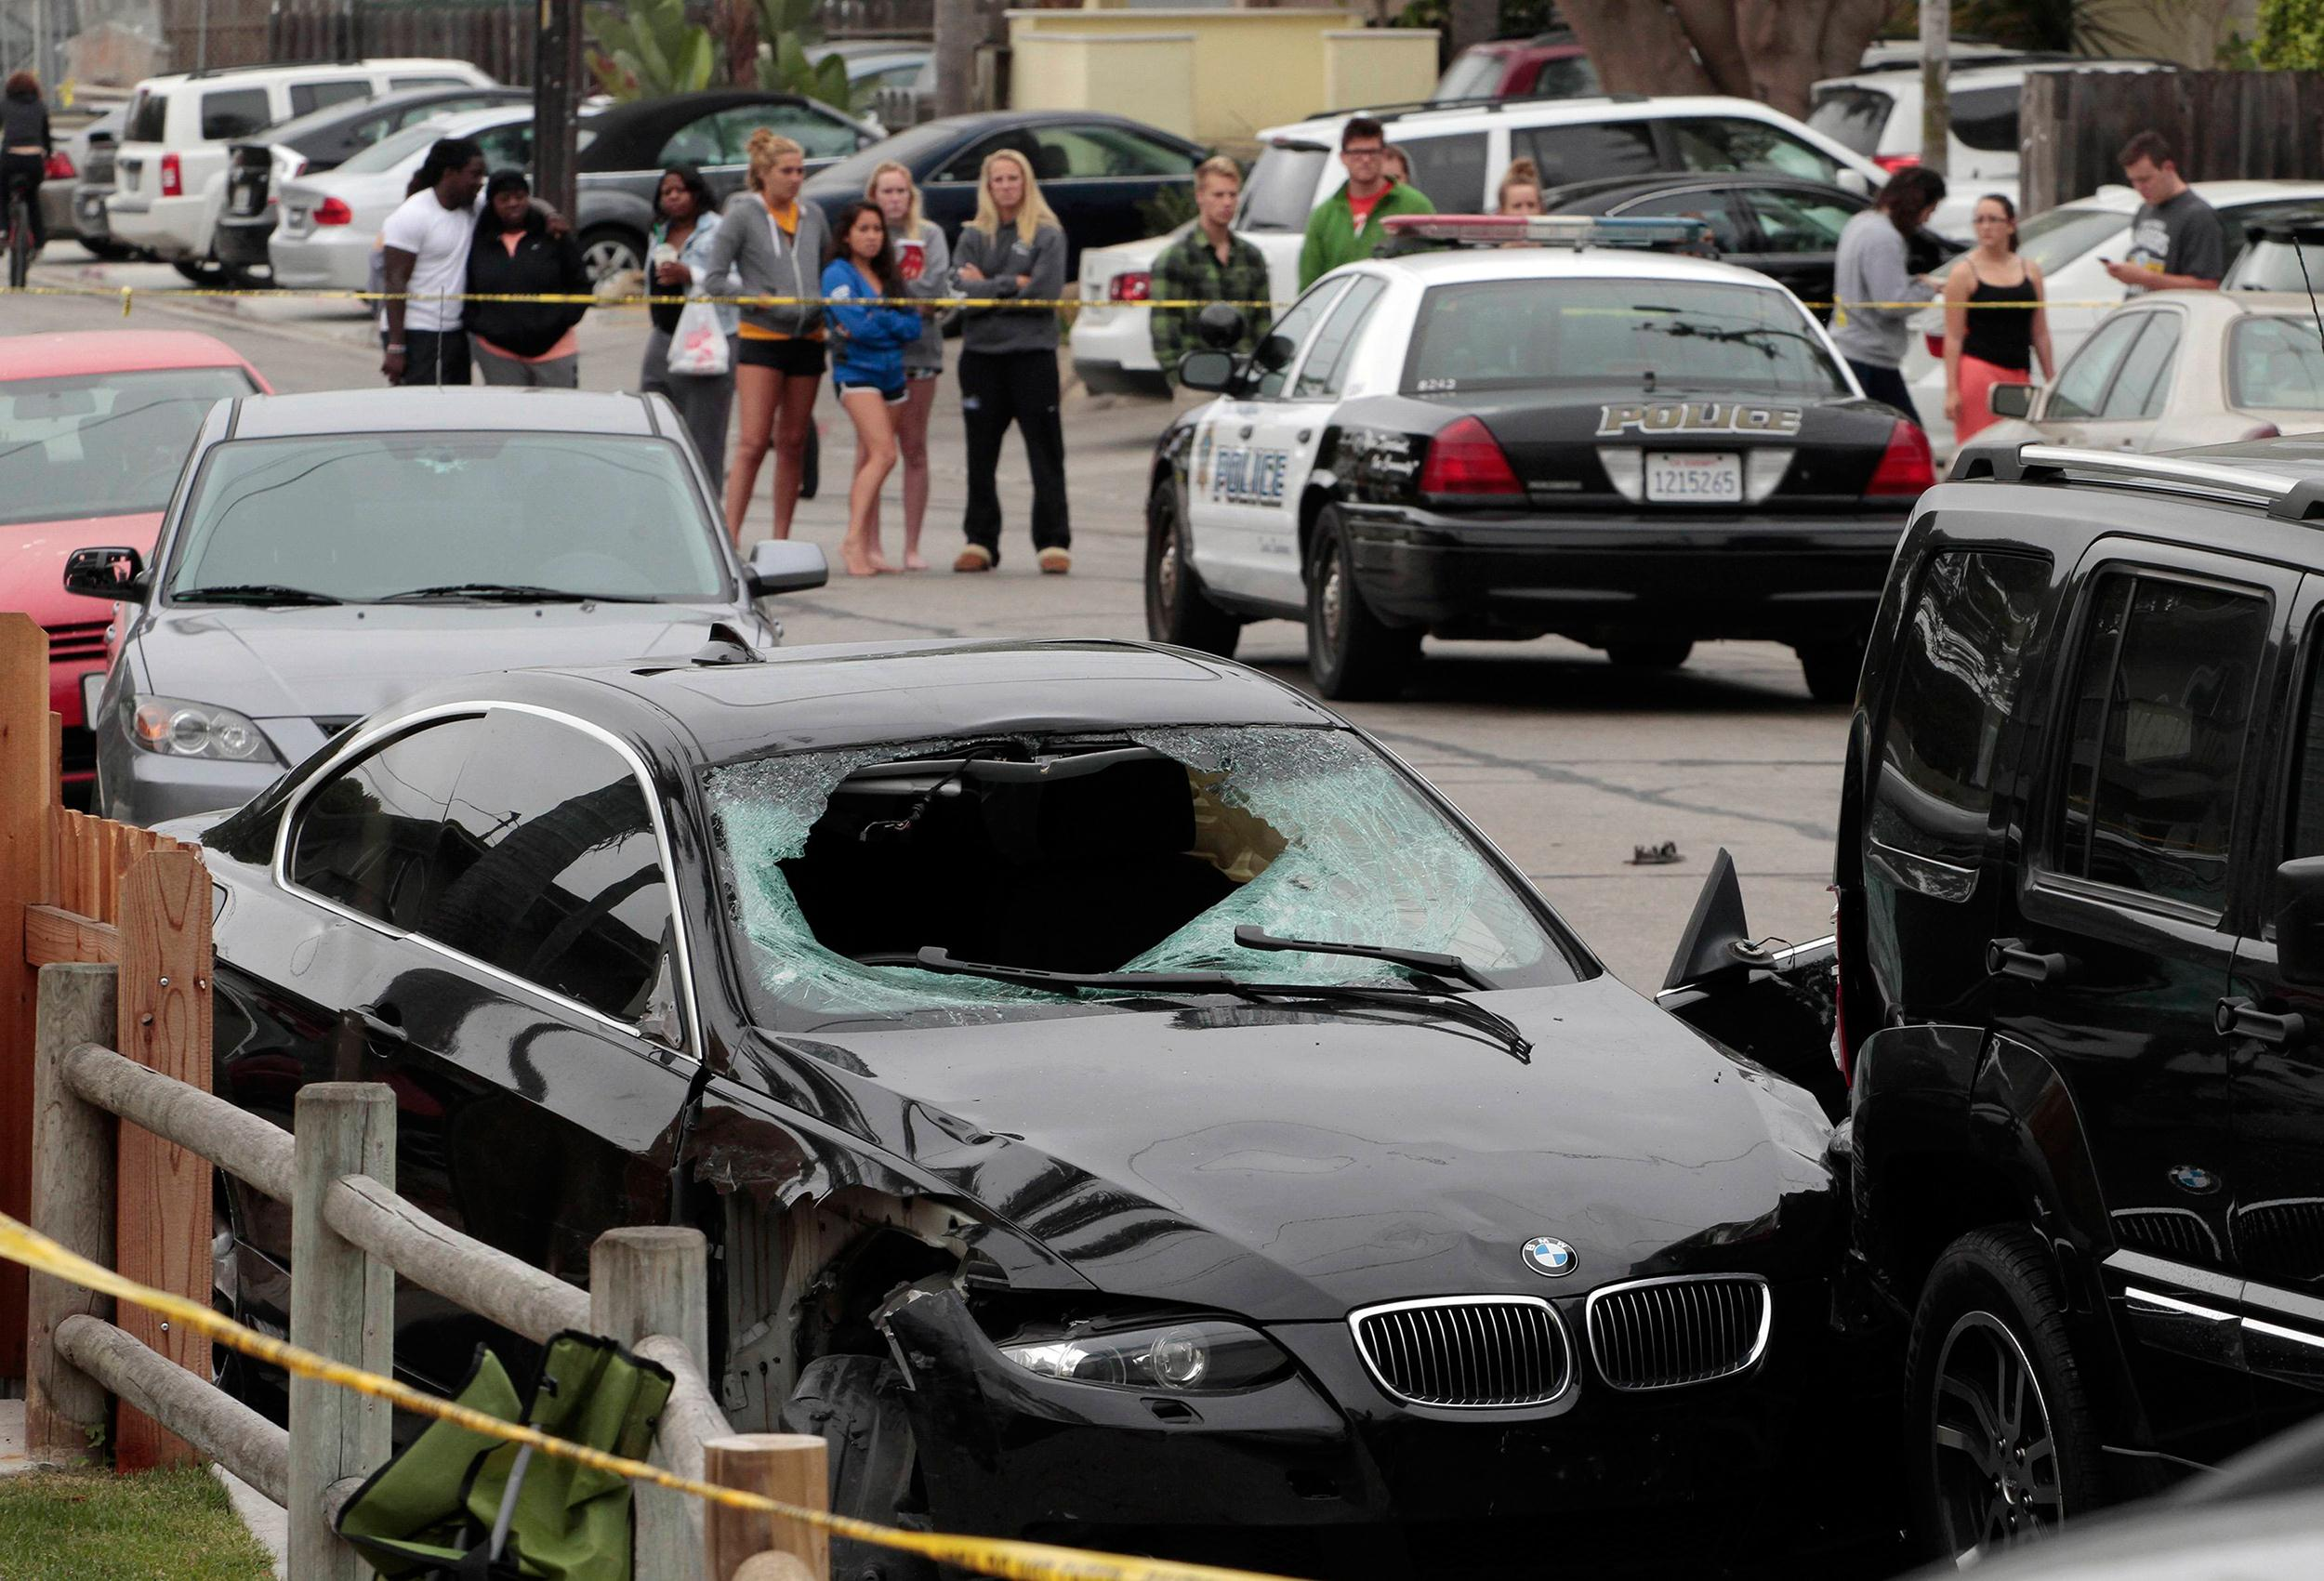 Image: The vehicle of the alleged shooter is pictured at one of the crime scenes after a series of drive-by shootings in the Isla Vista section of Santa Barbara